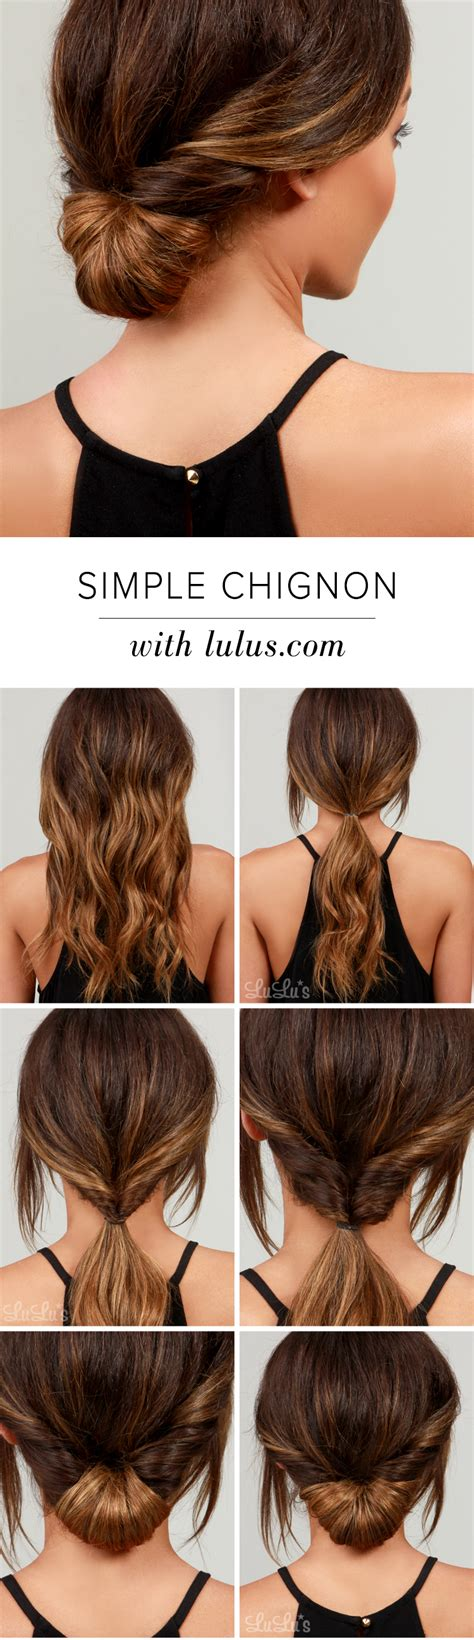 easy hairstyle how tos lulus how to simple chignon hair tutorial lulus com